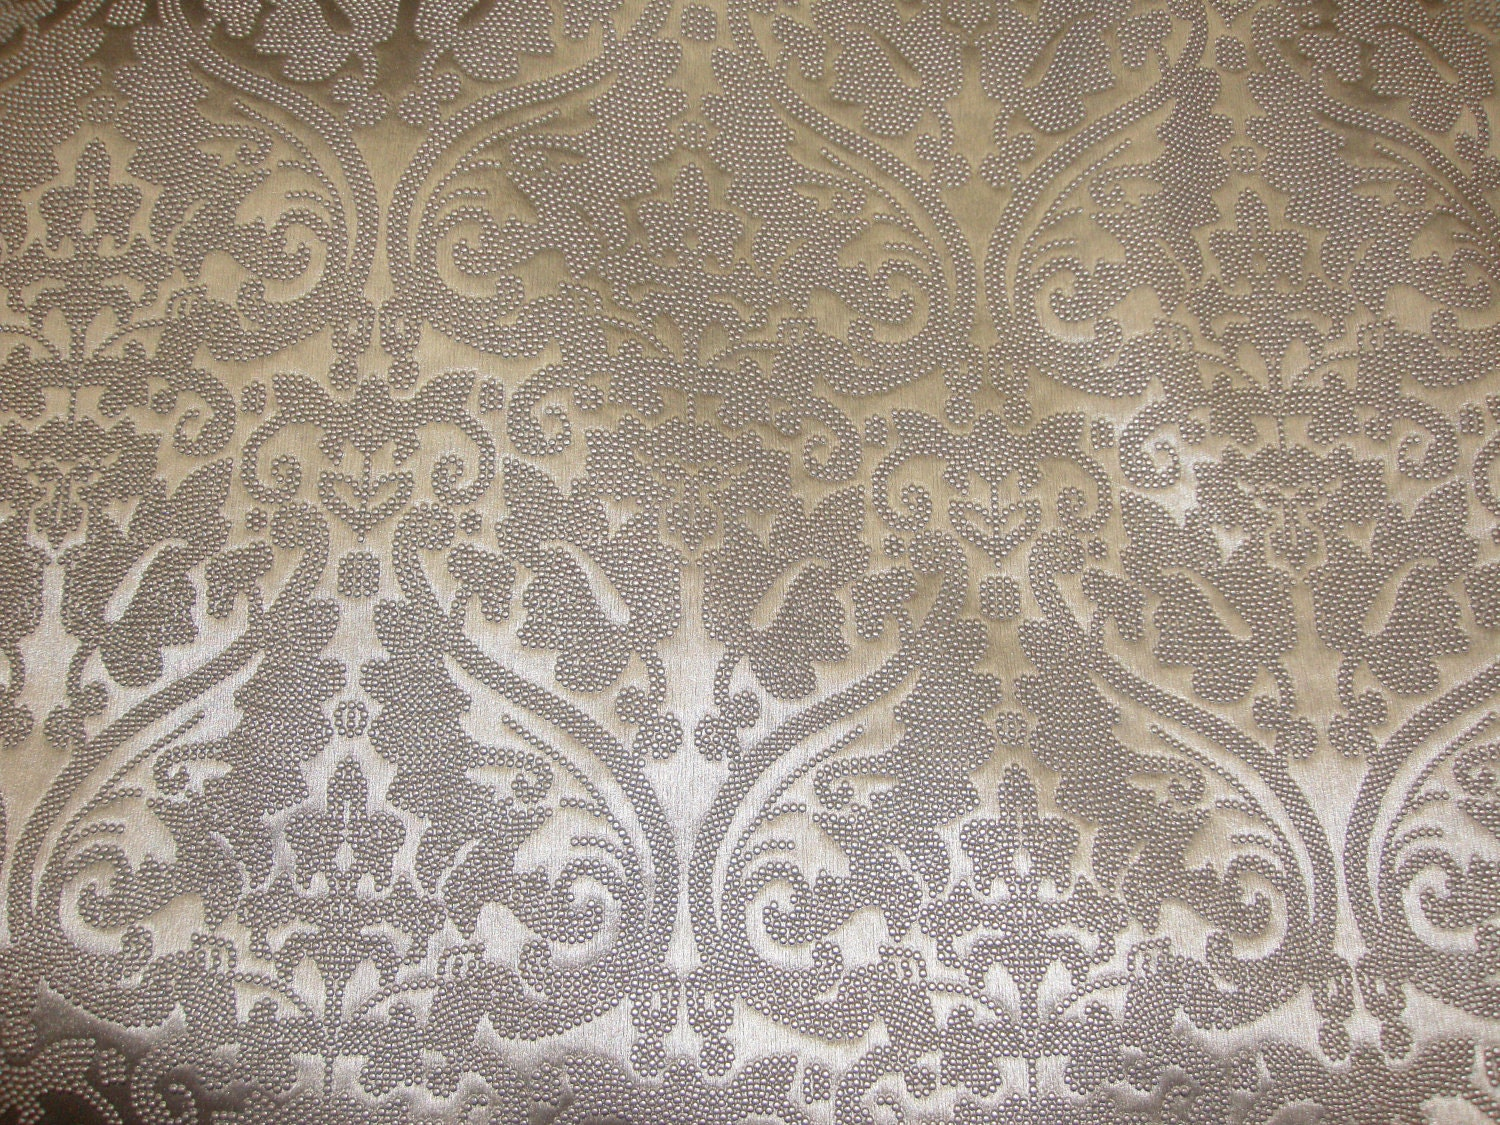 Vinyl Faux Fake Leather Silver Parisian Embossed Damask